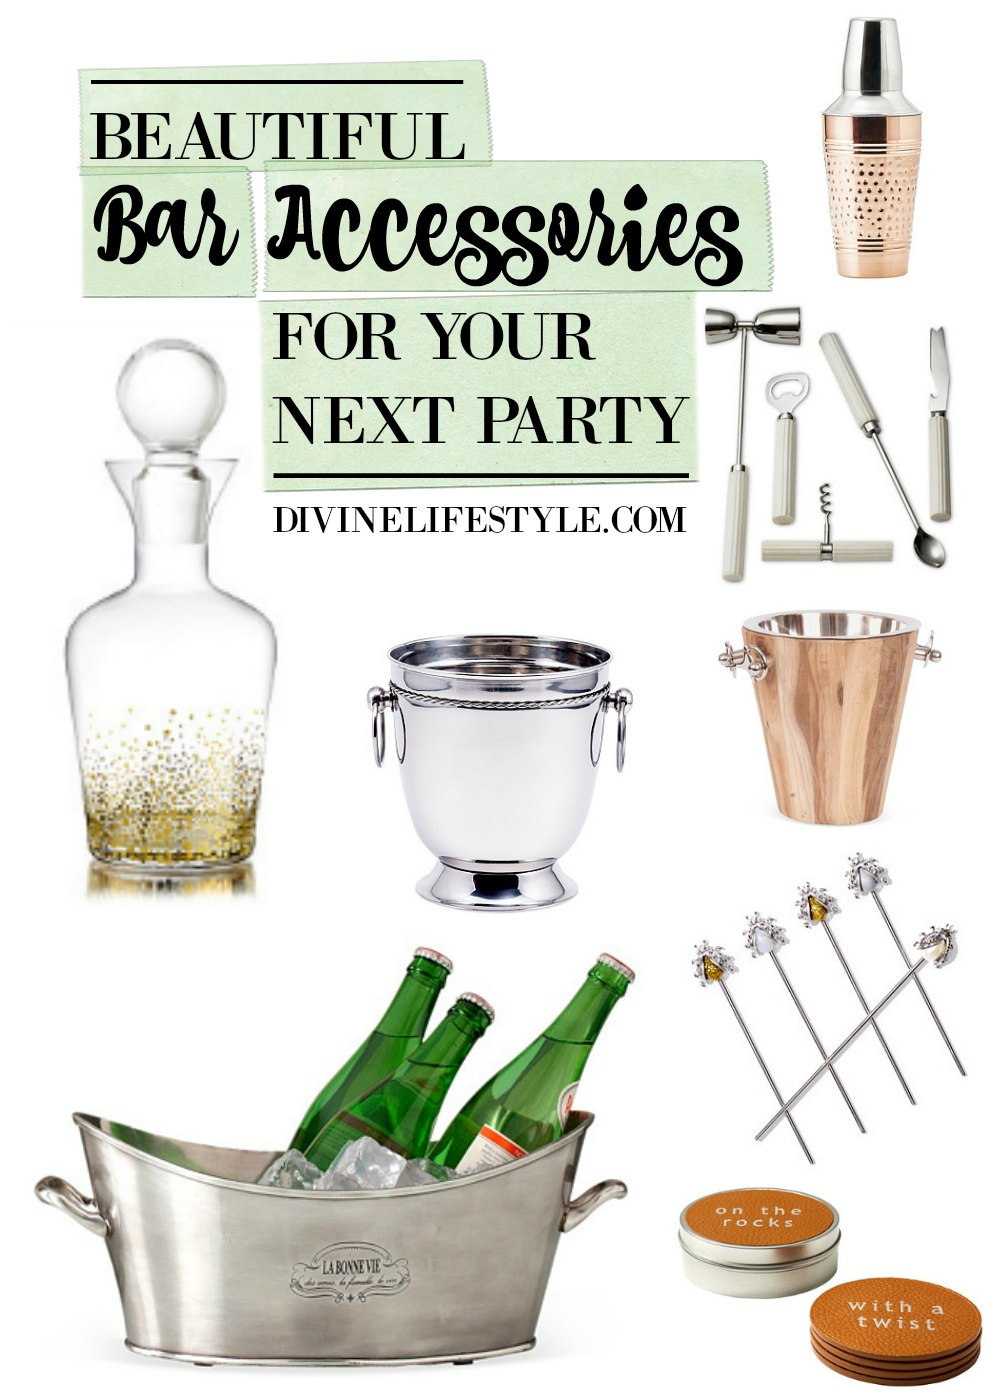 Freshen Up Your Bar Accessories for Your Next Party